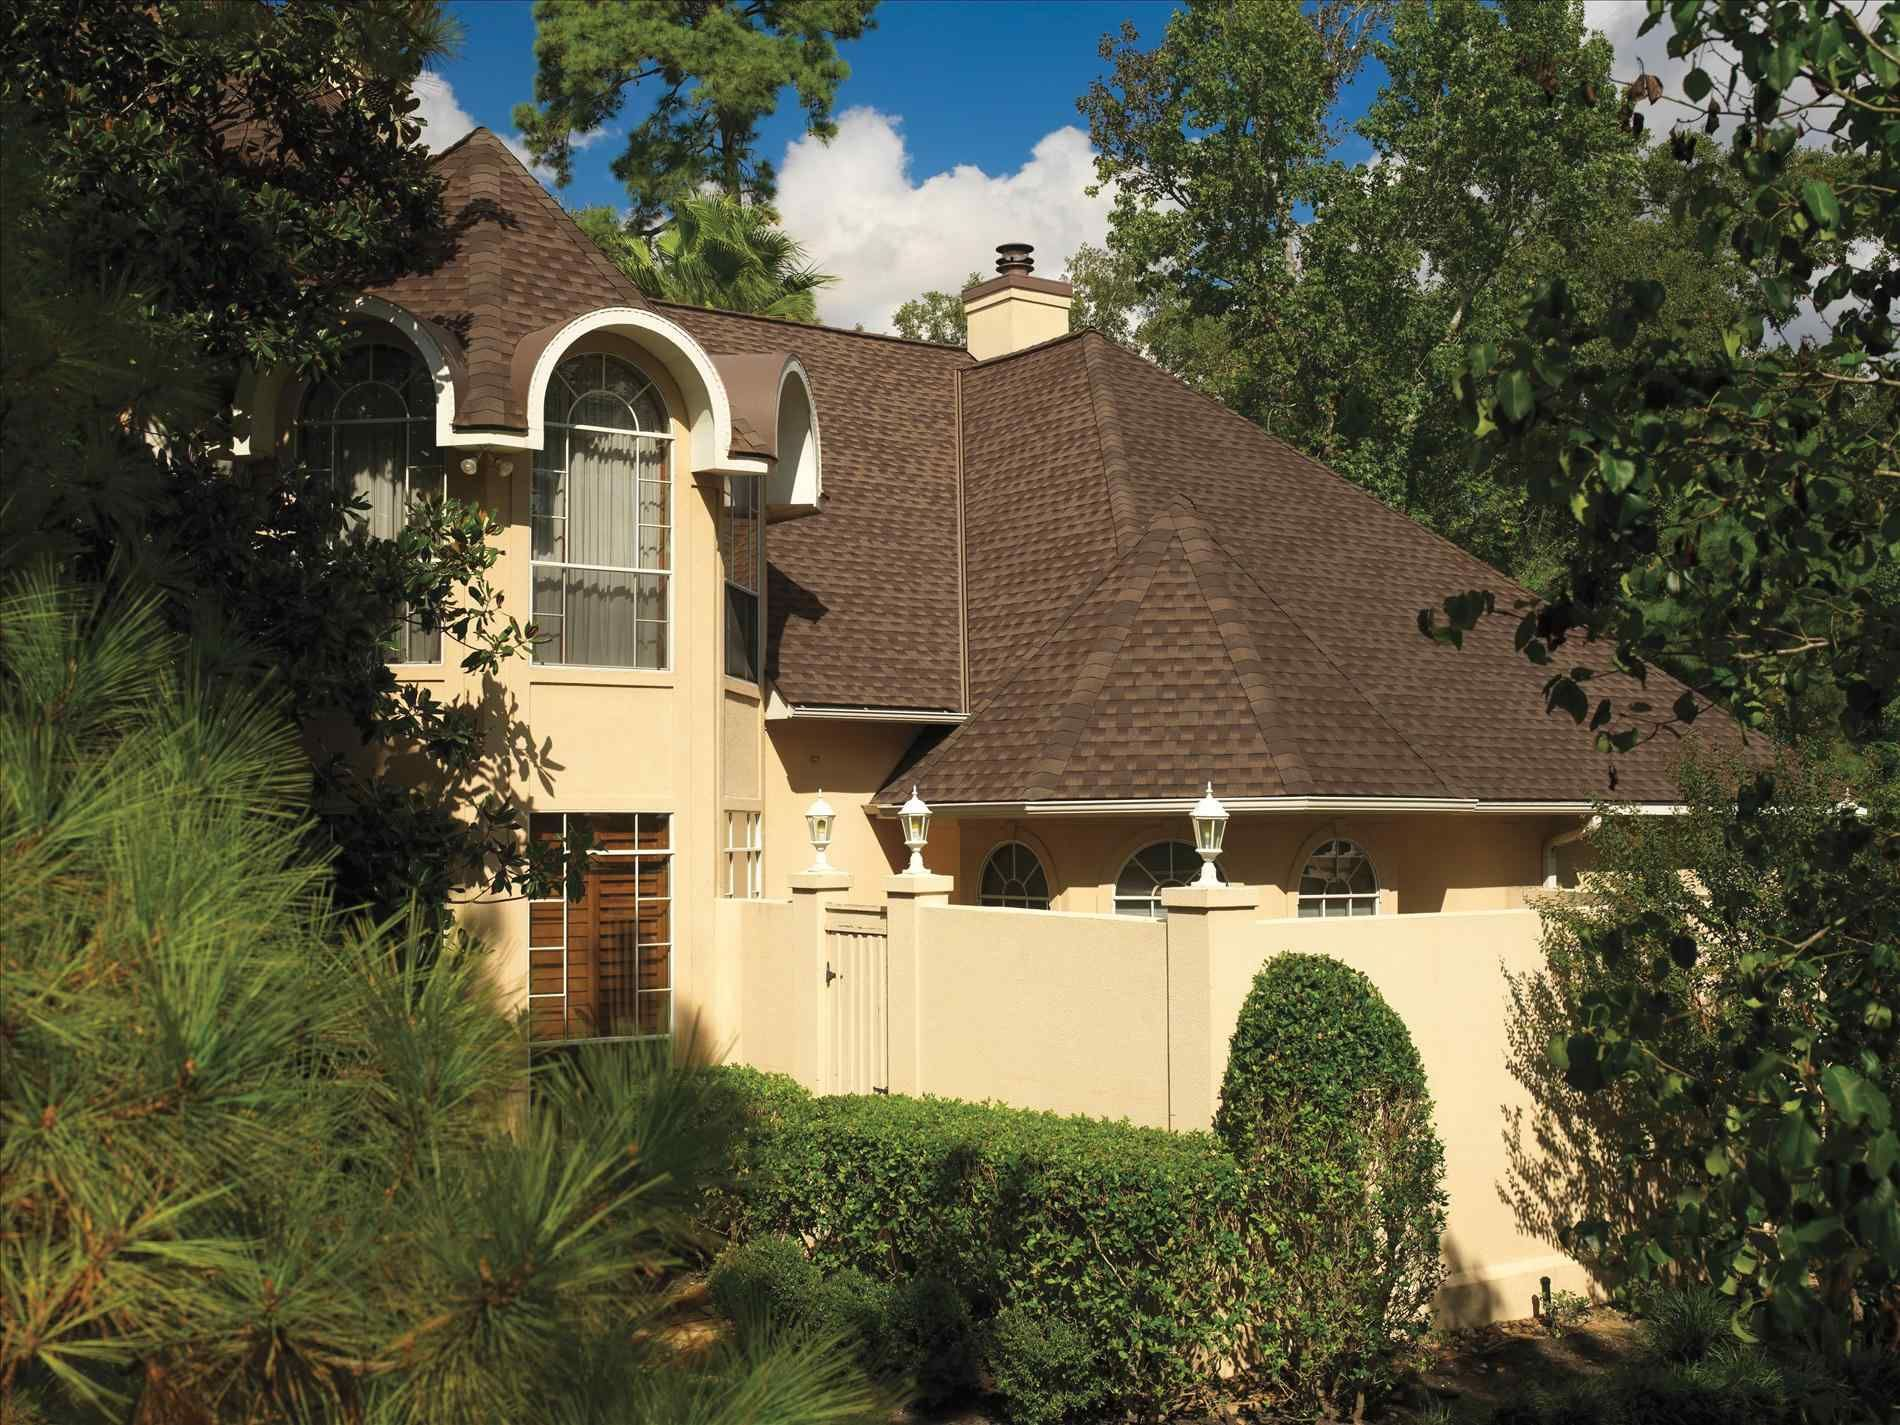 Best Removing Moss From Roof Shingles Roof Design Cedar Roof 400 x 300